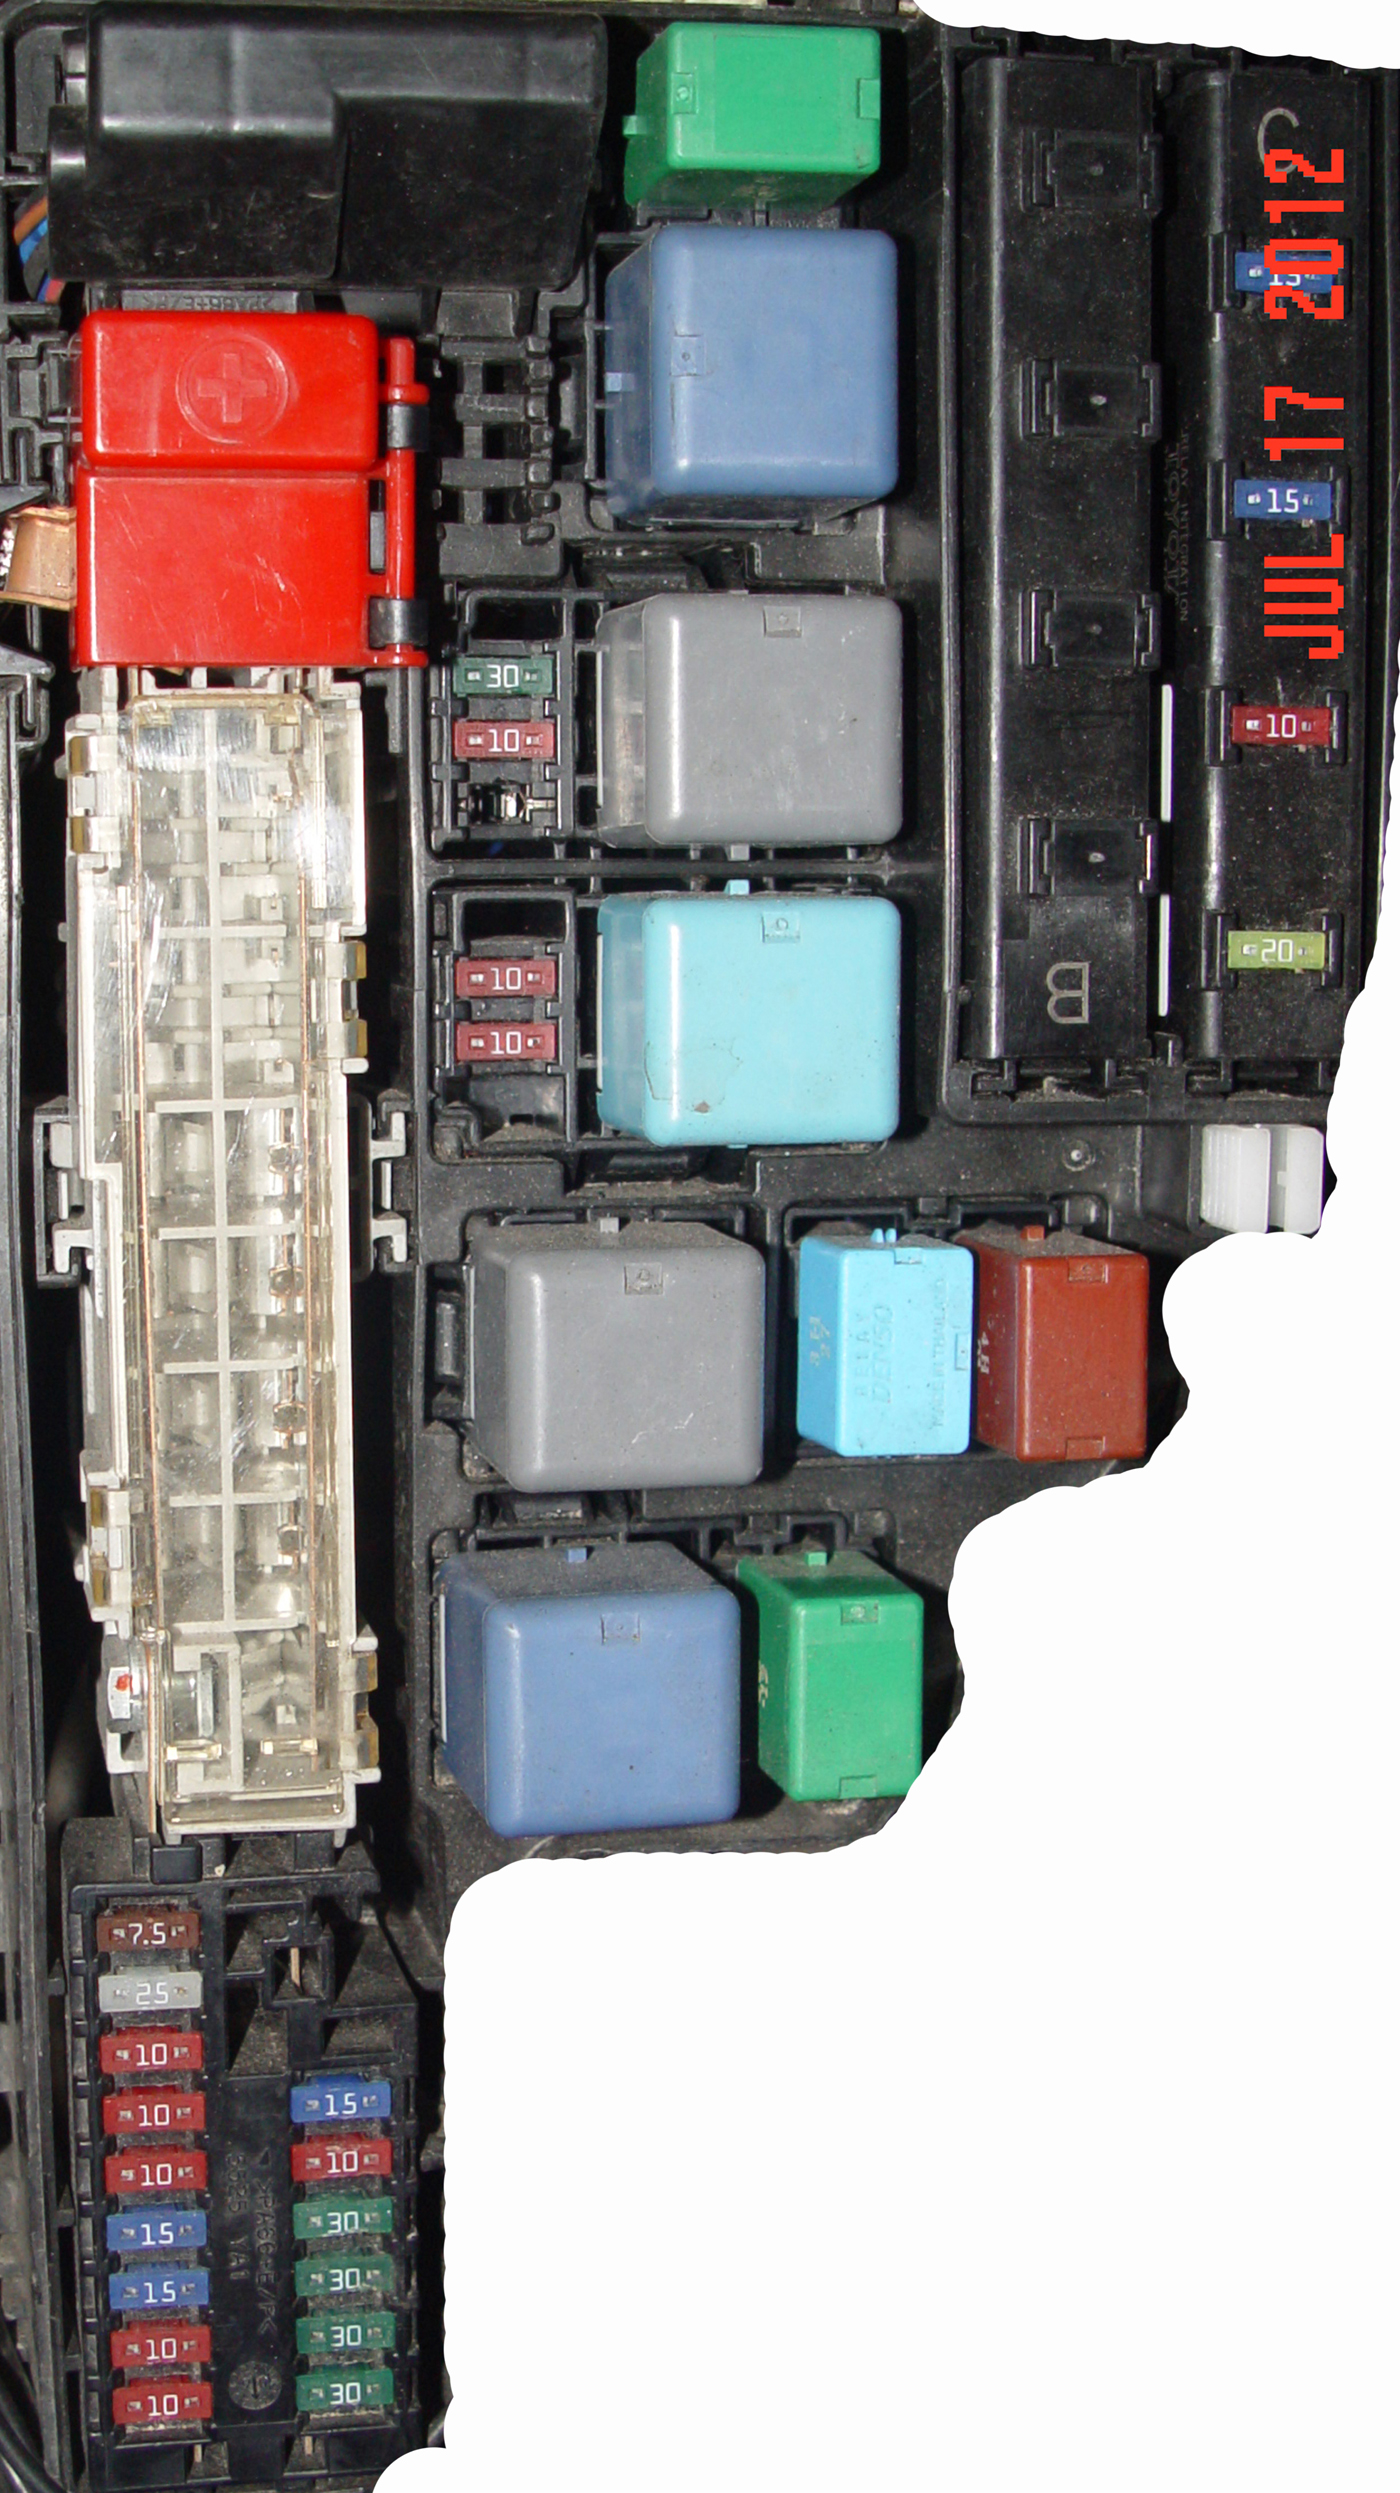 2004 toyota prius fuse box diagram iirGtIL 2008 toyota prius fuse box 2007 toyota prius fuse box \u2022 free 2004 prius wiring diagram at panicattacktreatment.co